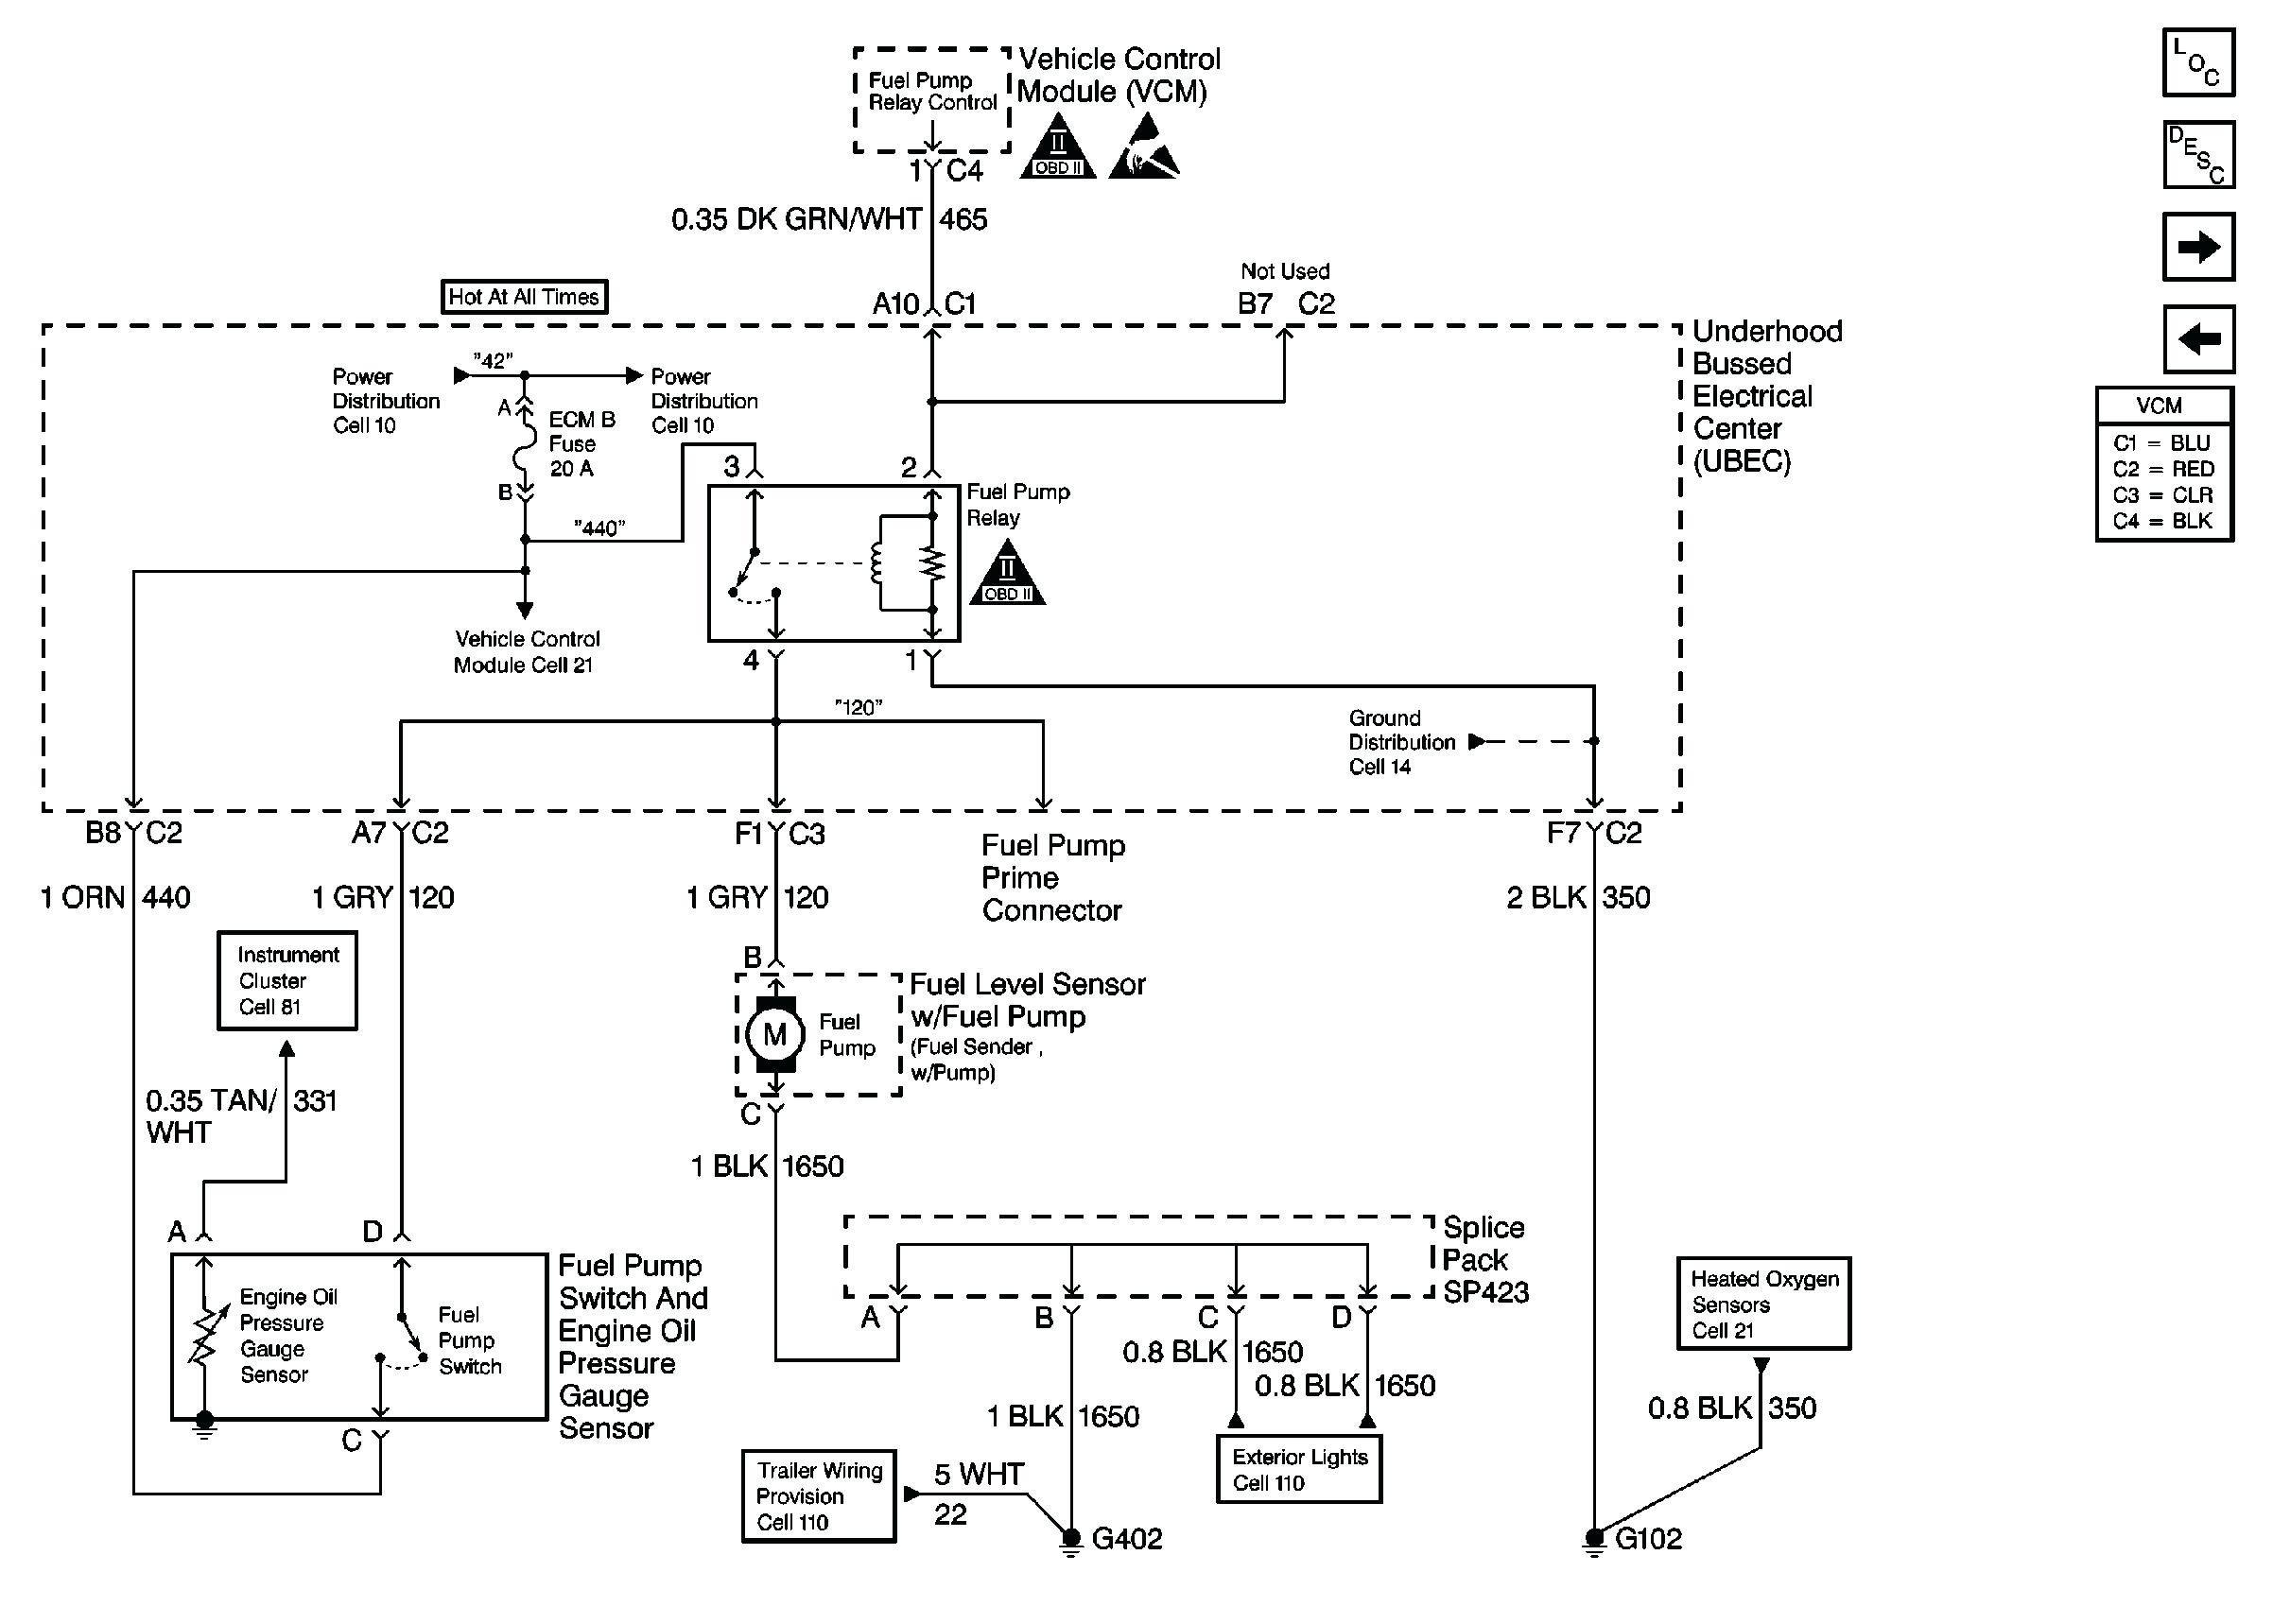 2000 Chevy Blazer Radio Wiring Diagram - All Wiring Diagram Data - 2000 Chevy S10 Wiring Diagram